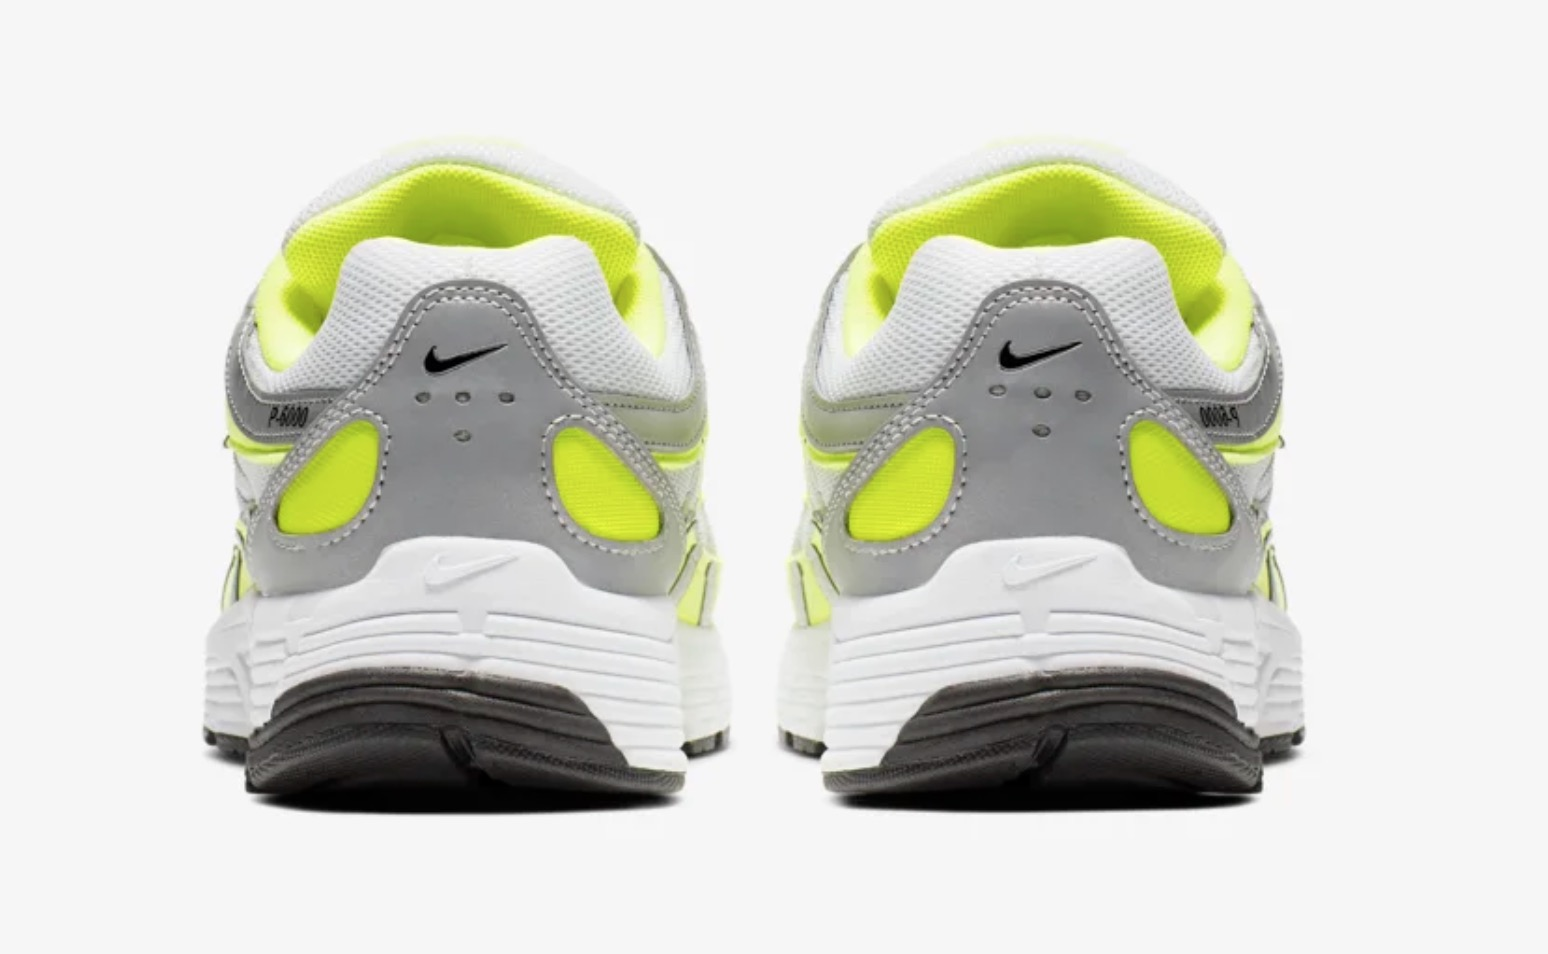 Nike P-6000 Naked CI7698-700 - Release Date | SneakerNews.com